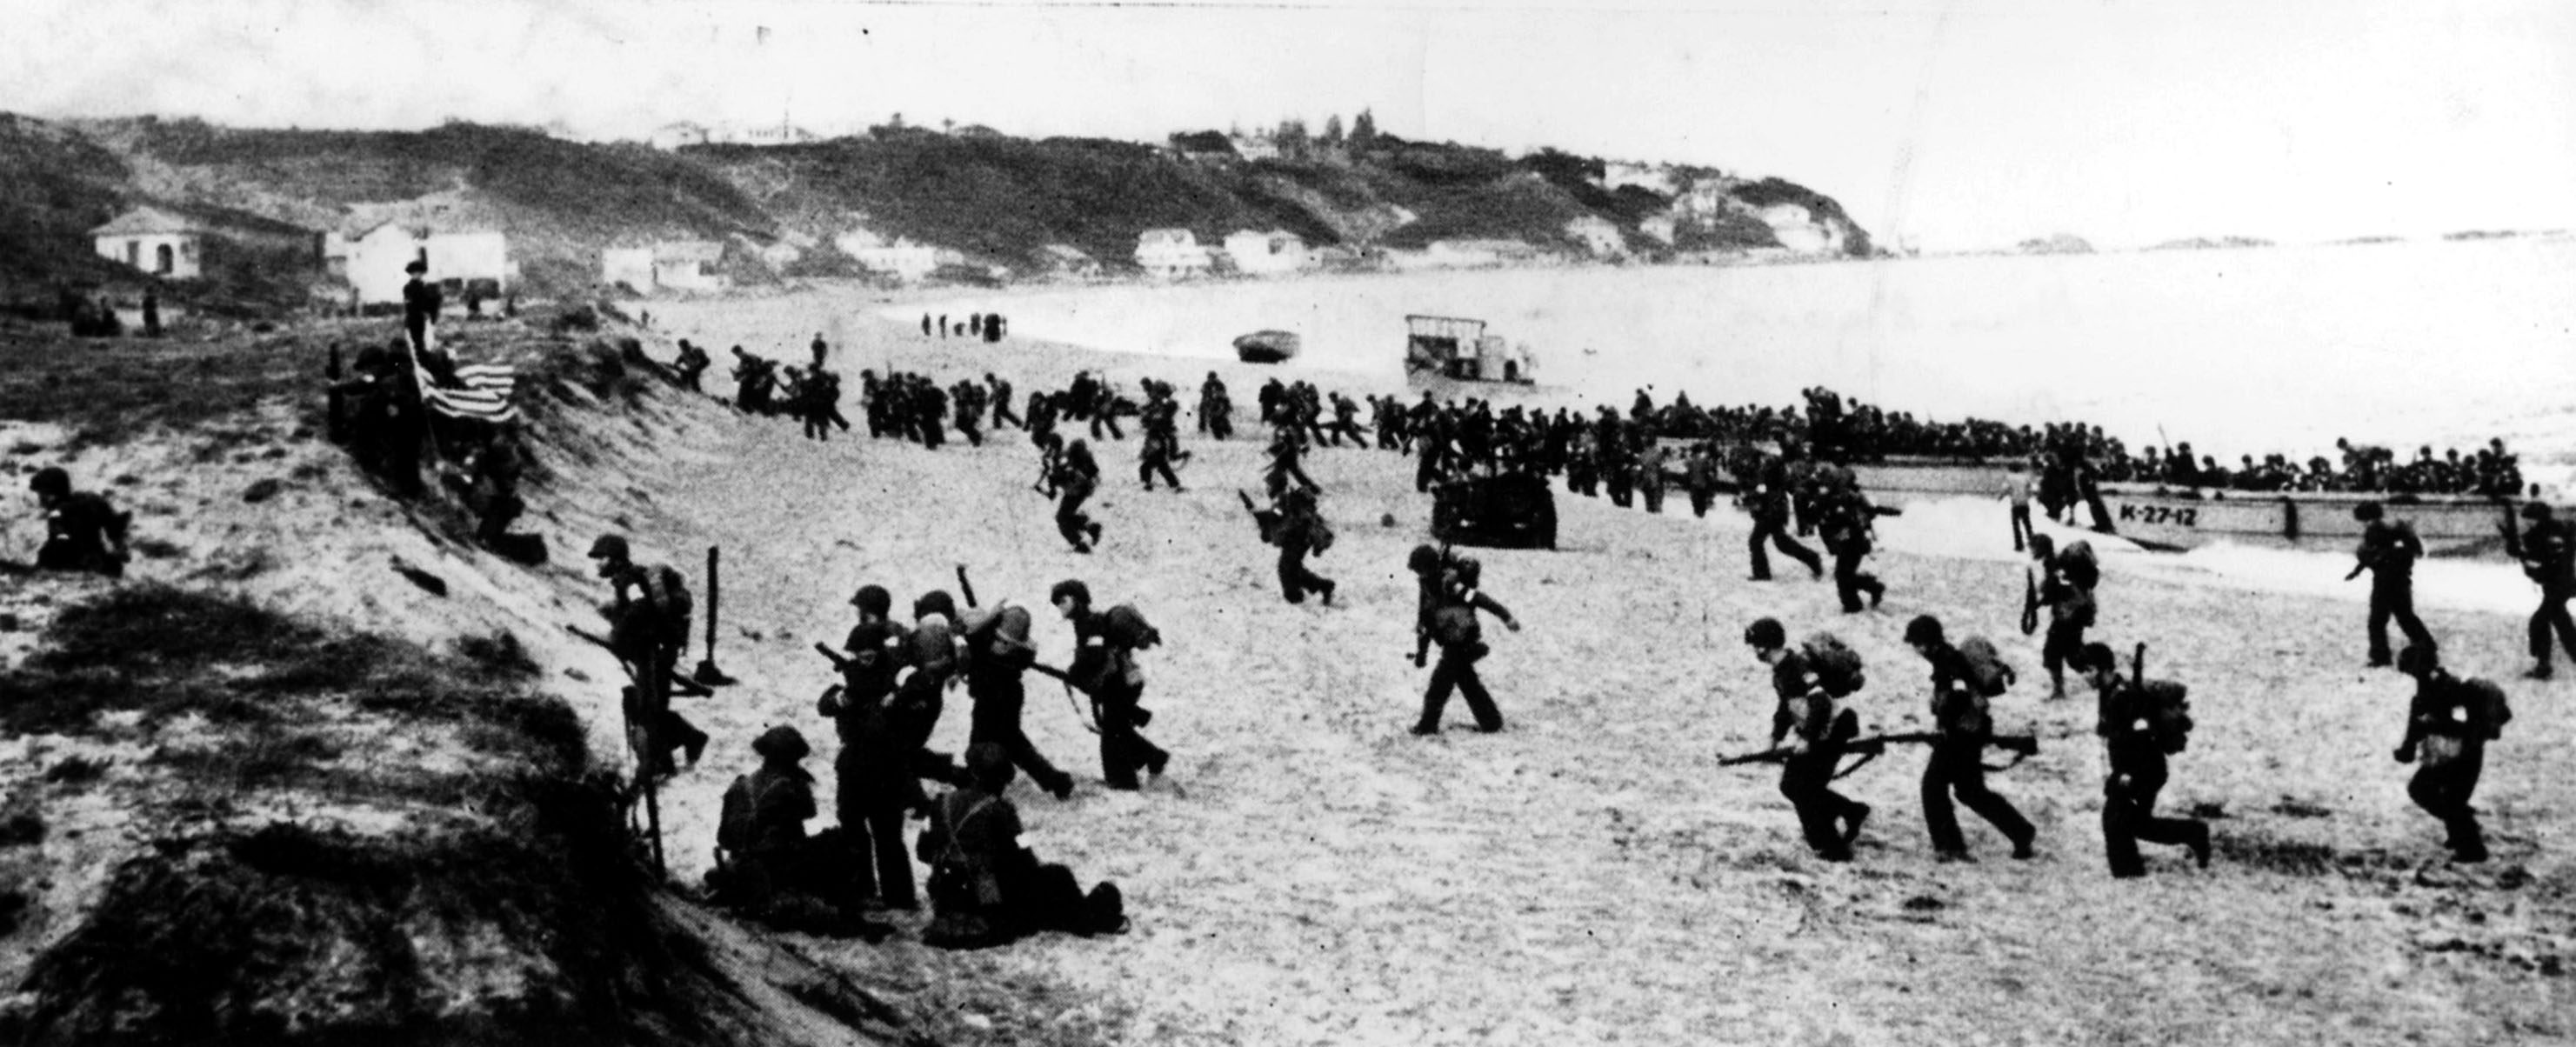 Torch troops hit the beaches